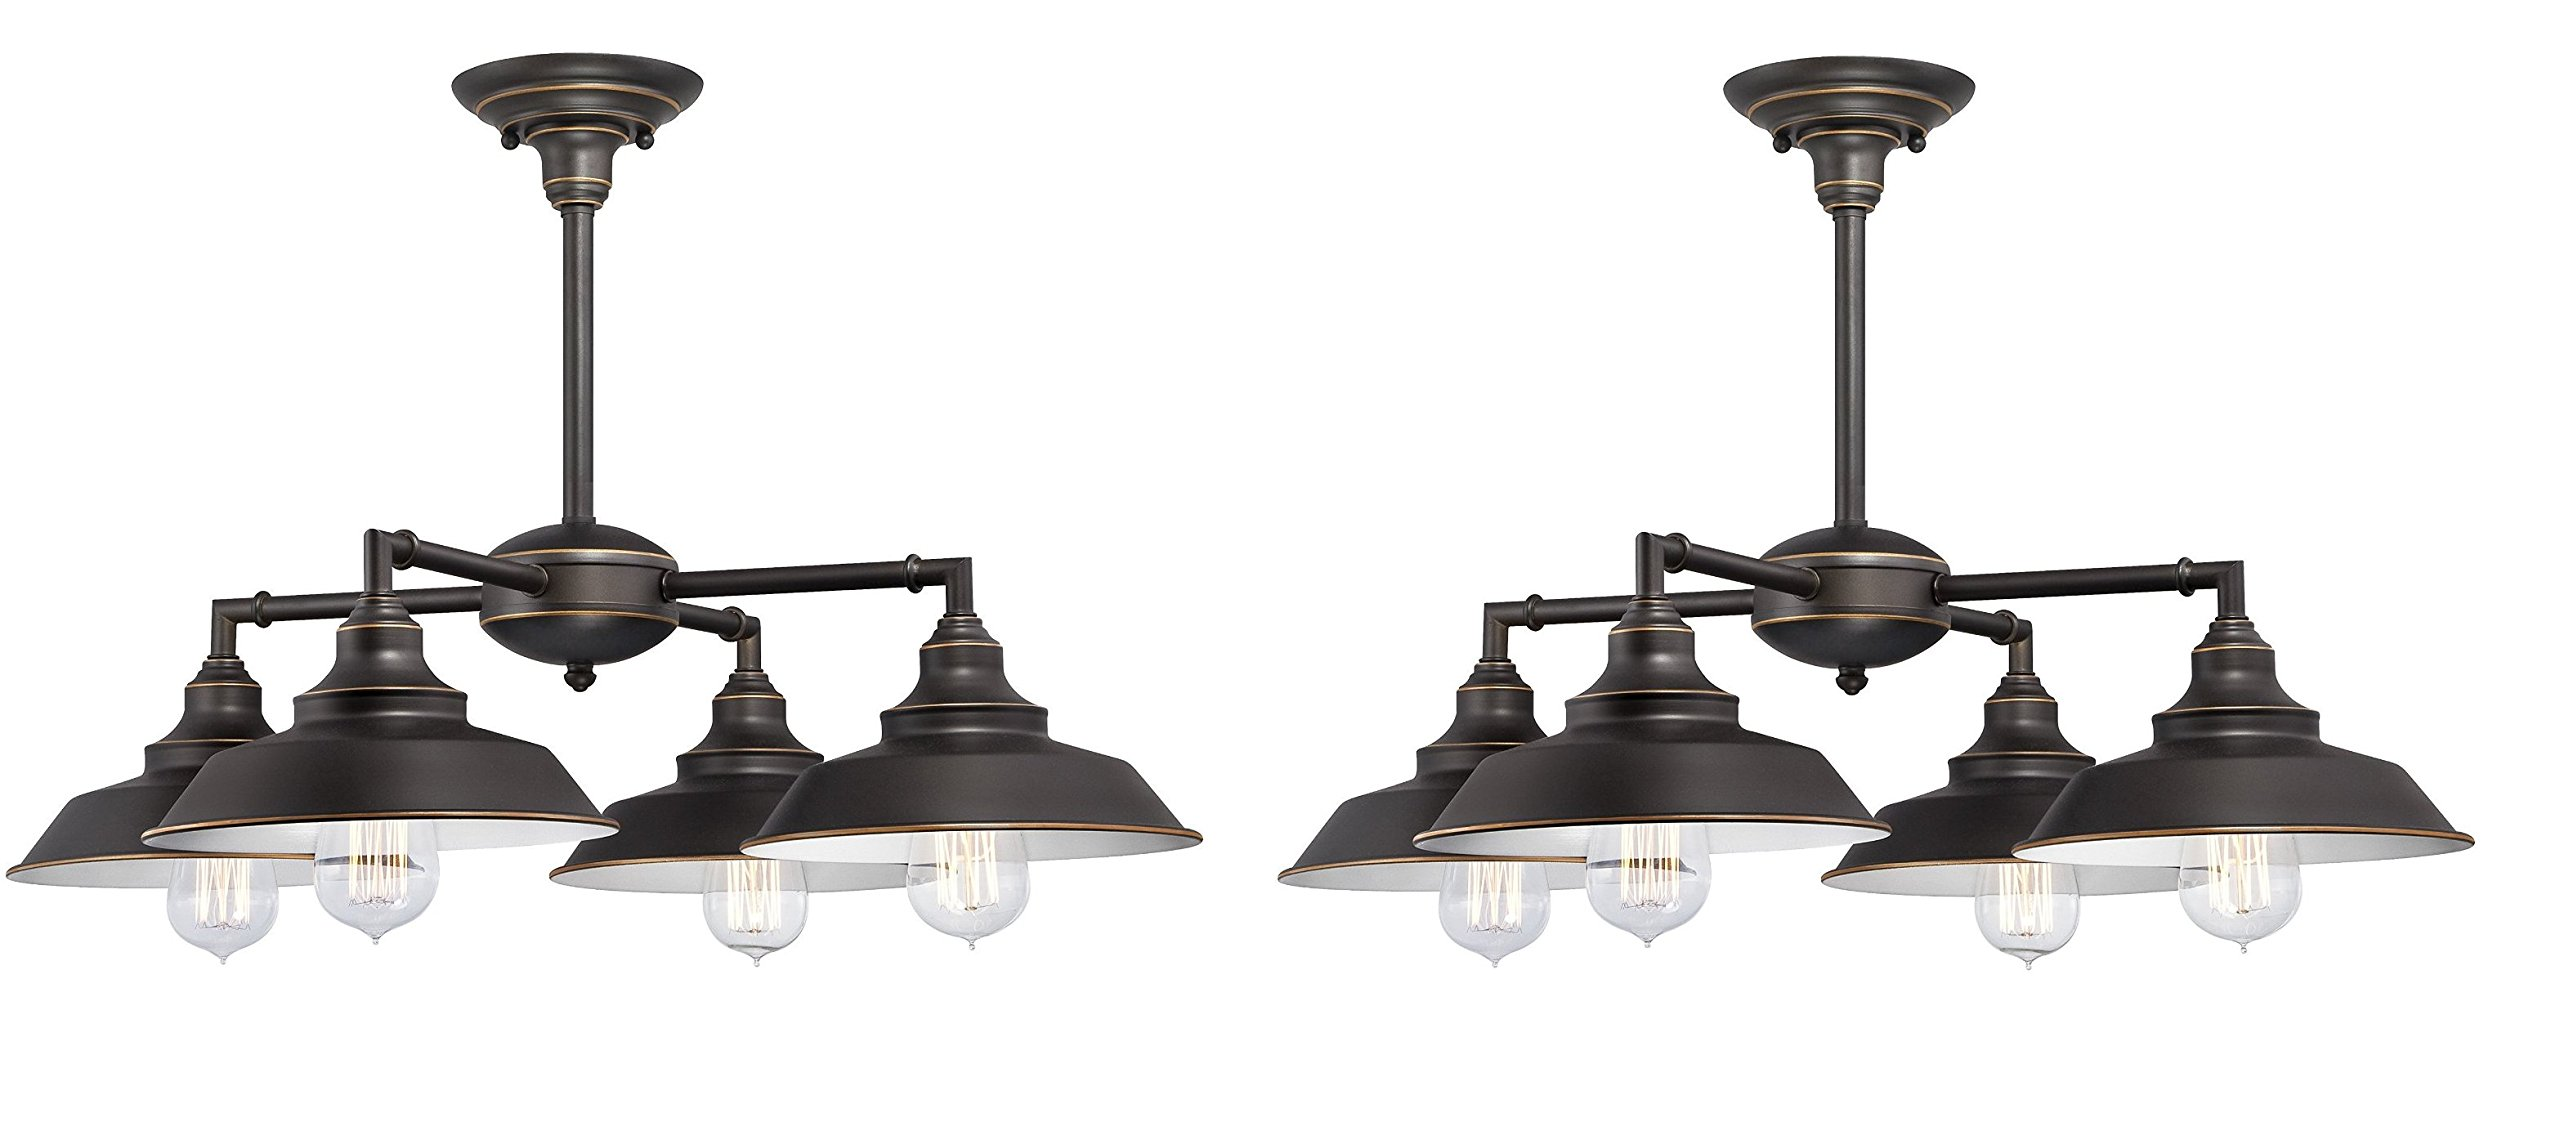 Four-Light Indoor Convertible Chandelier/Semi-Flush Ceiling Fixture, Oil Rubbed Bronze Finish with Highlights and Metal Shades (2 Pack) by Westinghouse